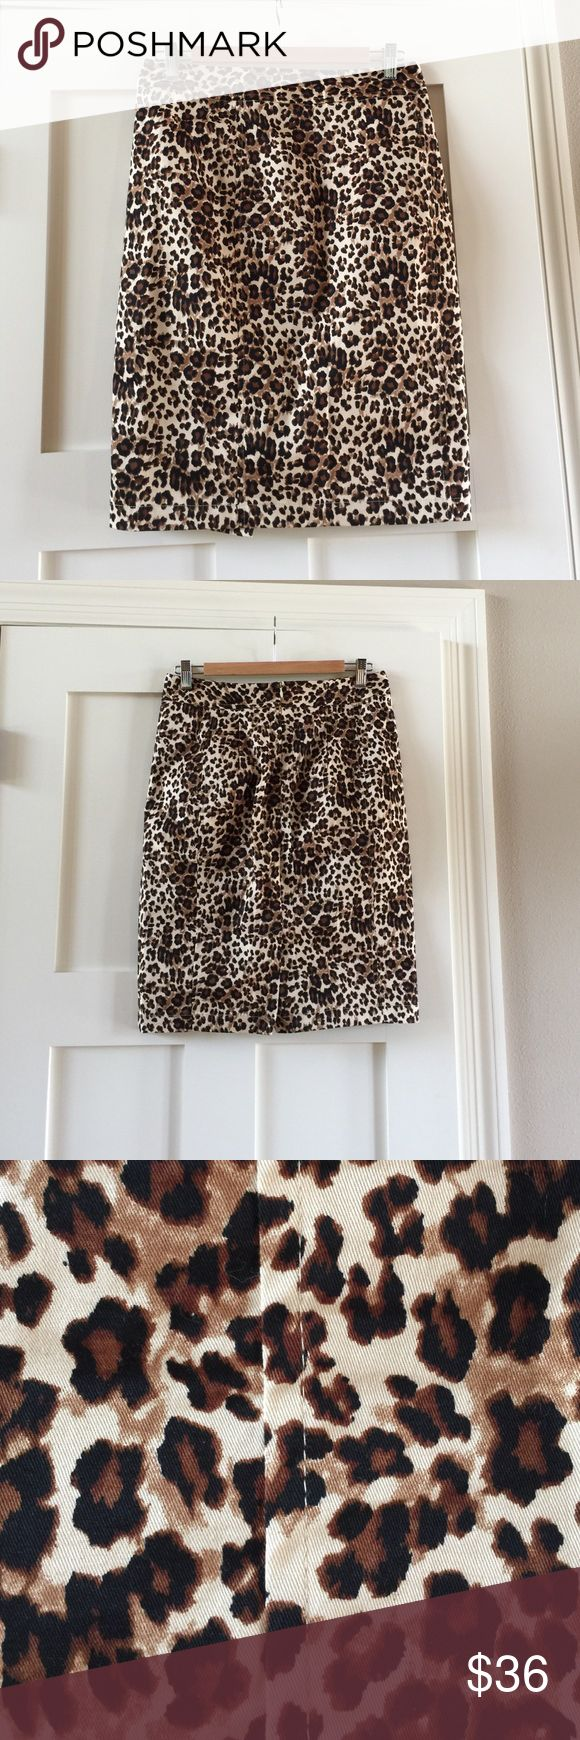 41 Hawthorn Stitch Fix szM print pencil skirt 41 Hawthorn a Stitch Fix brand szM print pencil skirt.  This is the perfect pattern for Summer!  This skirt would look super cute with heels or with flats.  Comes from smoke free and pet free home. 41 Hawthorn Stitch Fix Skirts Pencil